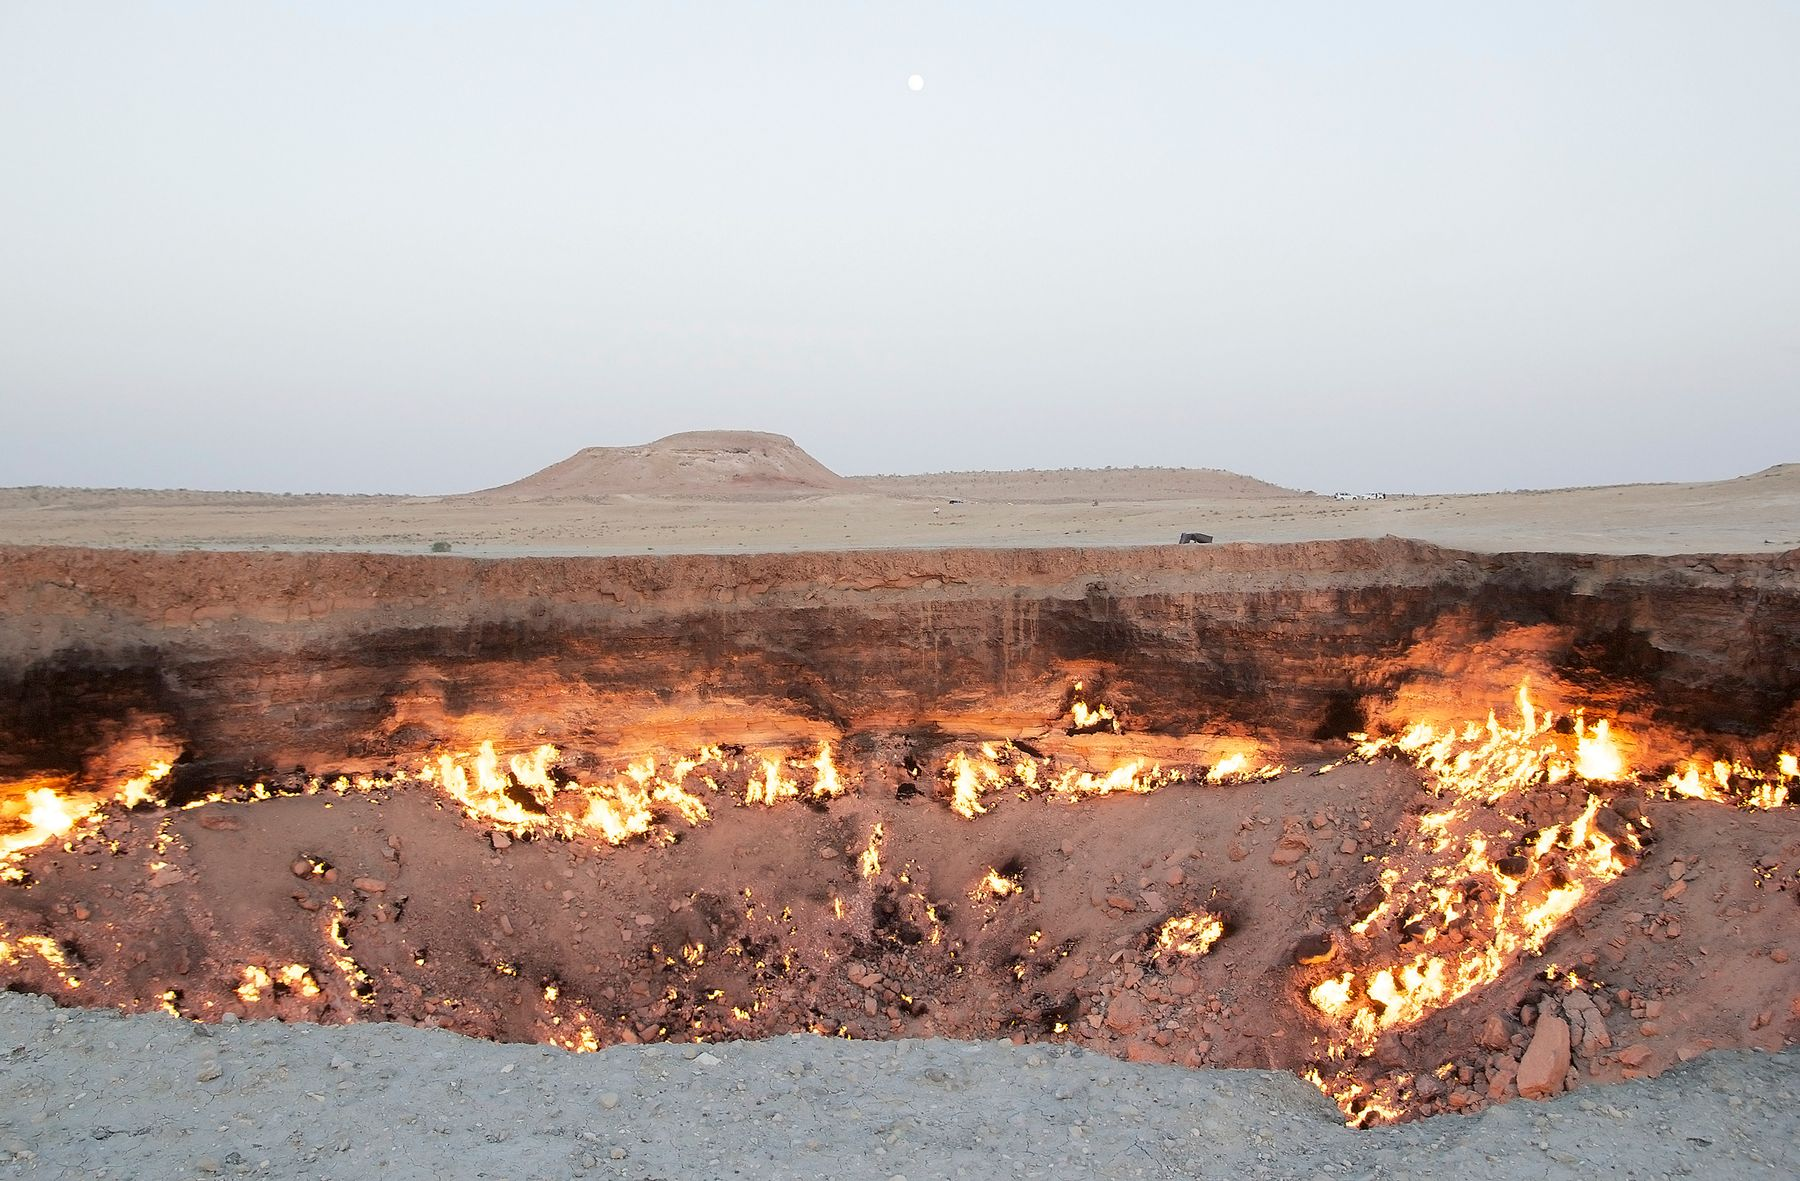 The Door to Hell is a natural wonder in Karakum desert, Turkmenistan